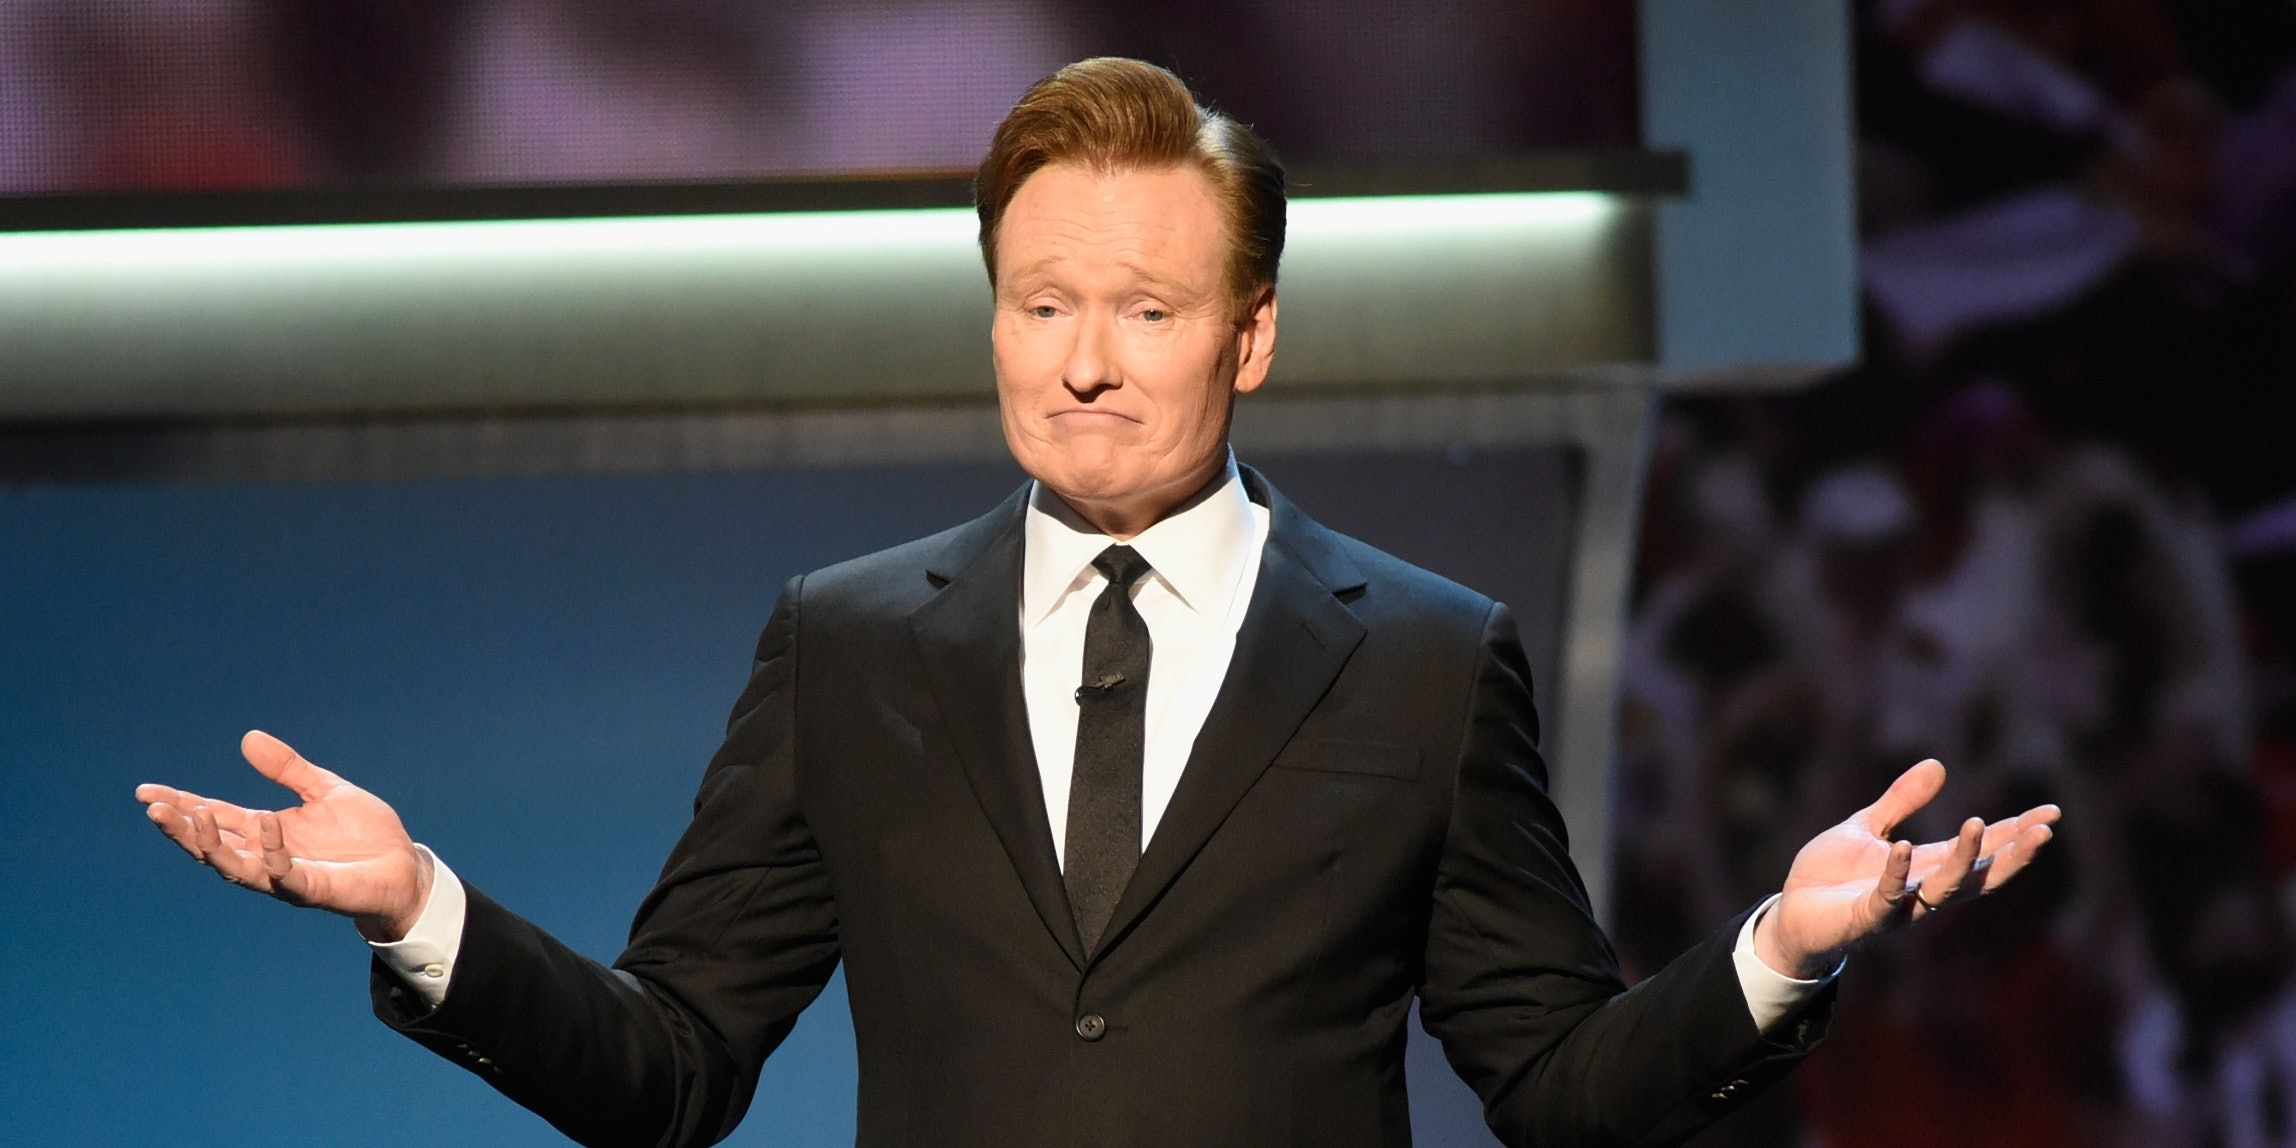 How Well Do You Know Conan O'Brien?